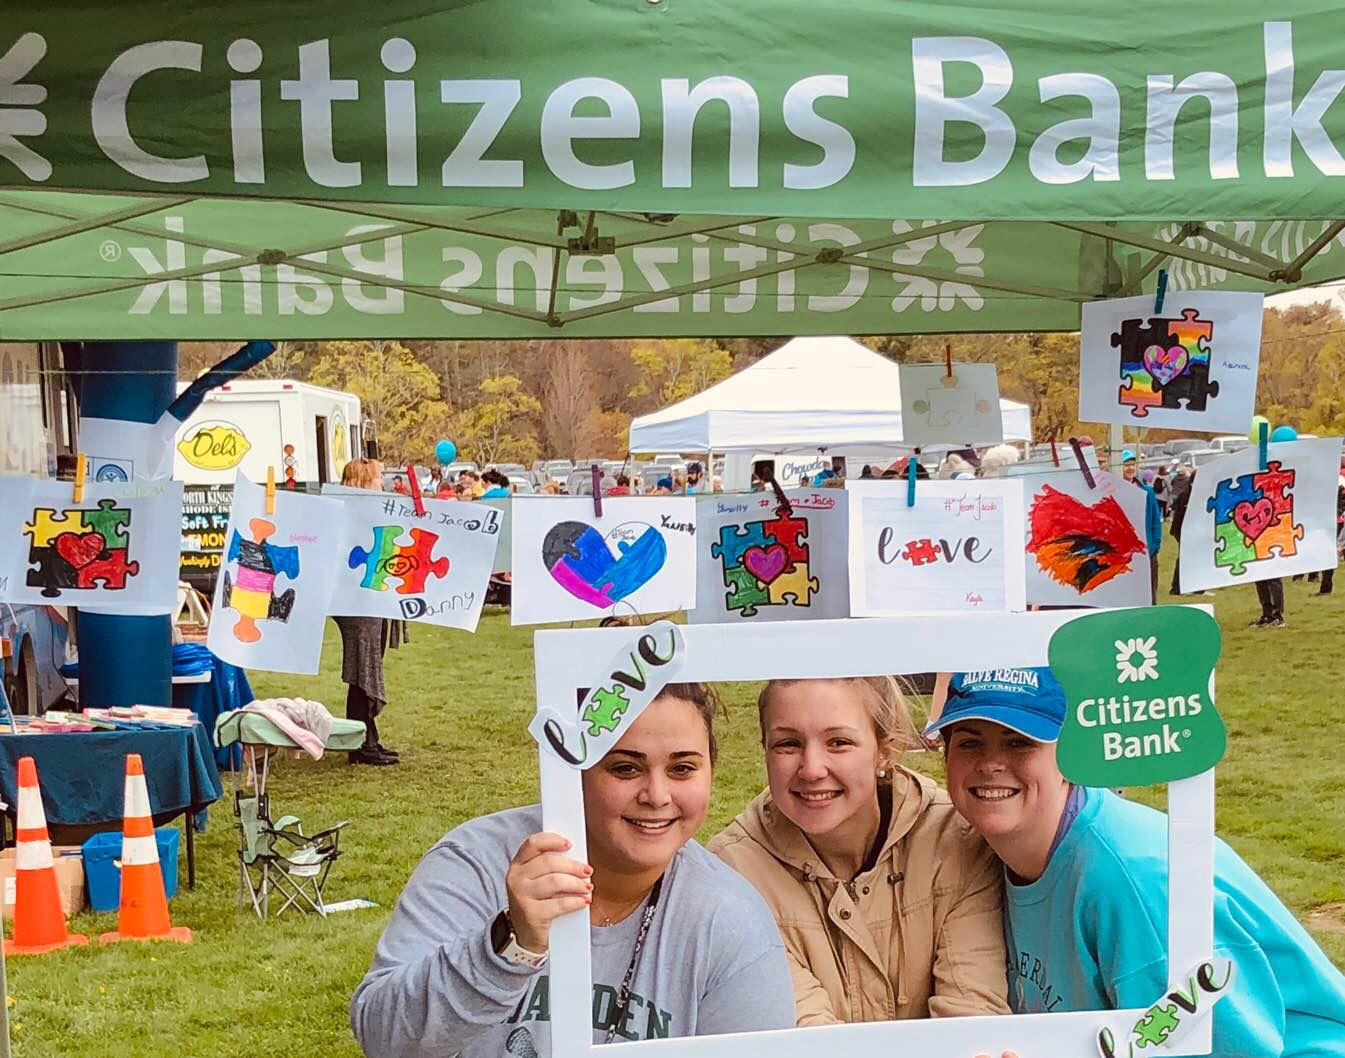 Citizens Bank logo with 3 people under smiling